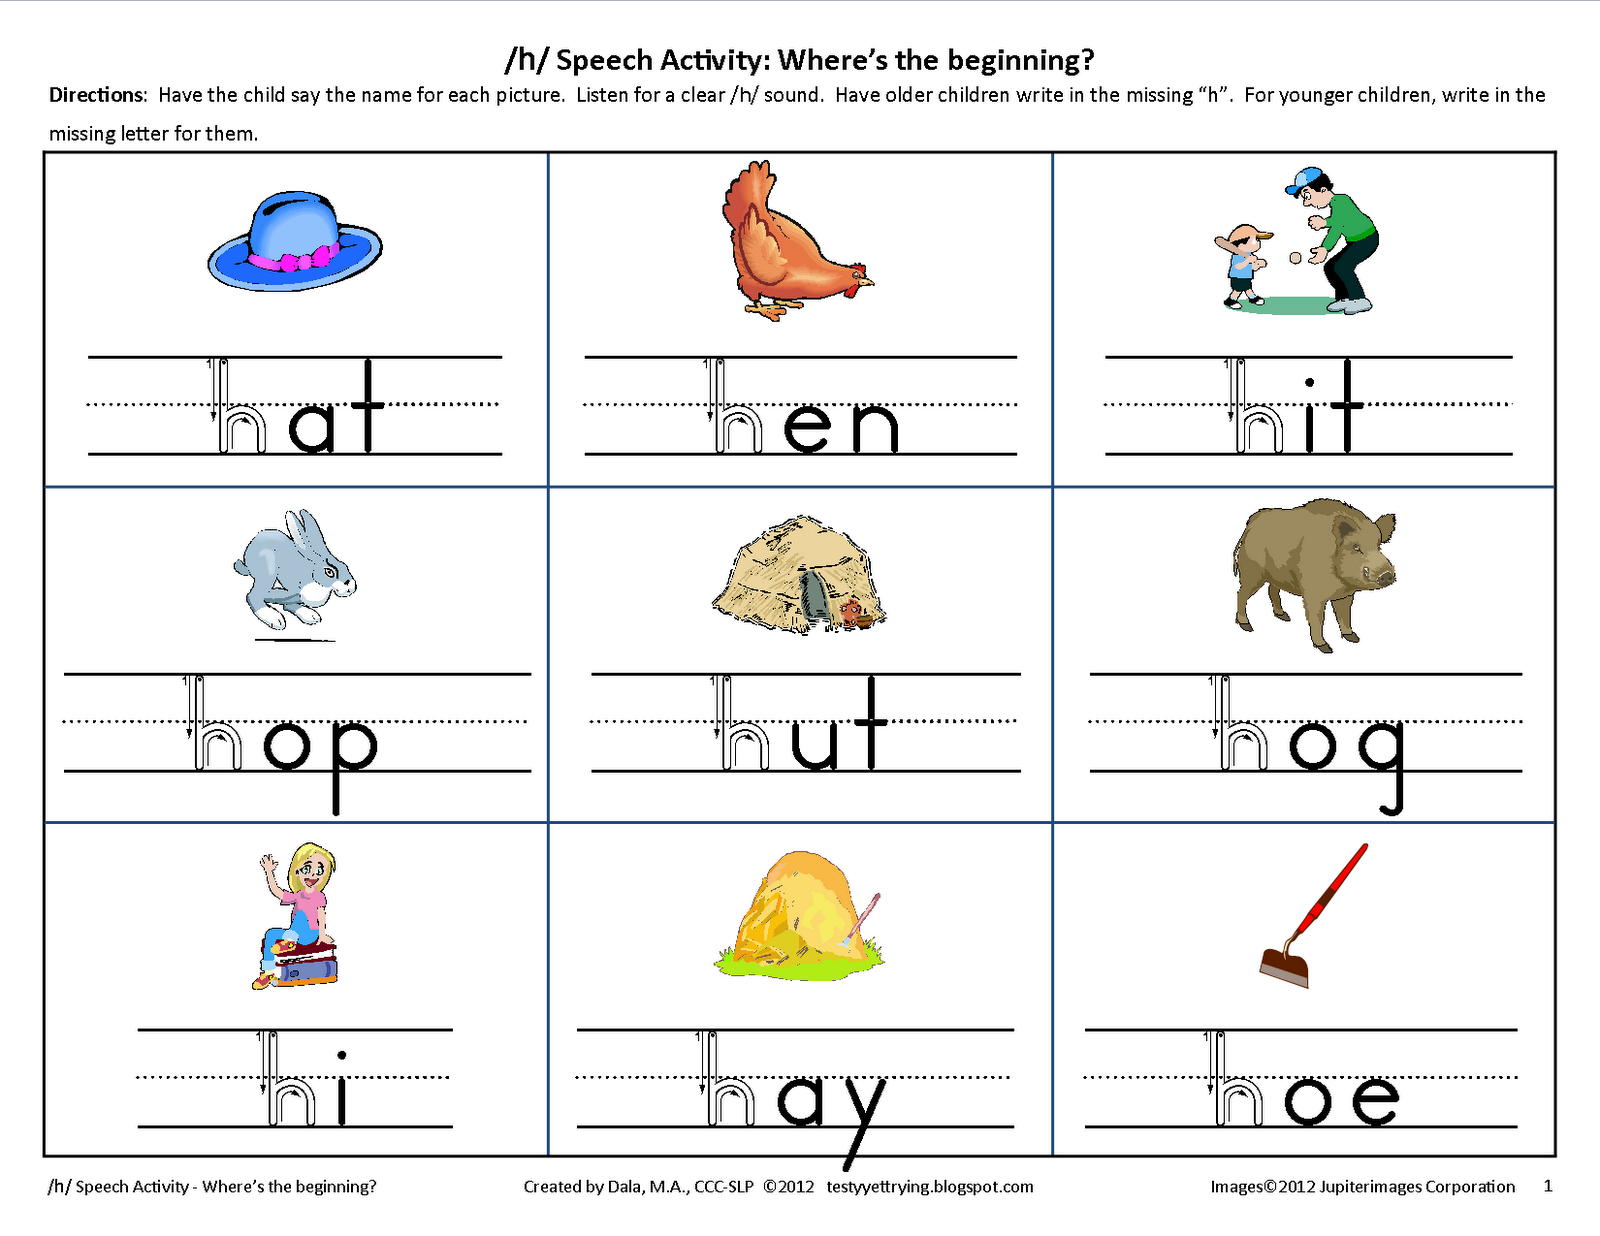 Weirdmailus  Personable Testy Yet Trying Initial H Speech Worksheet With Outstanding Make Classroom Teachers Happy Reinforce Phonics And Handwriting And Practice Speech All At The Same Time With Astounding Free Alliteration Worksheets Also Subtraction Worksheets Year  In Addition Worksheet Works Fractions And Free Printable English Worksheets For Grade  As Well As Kindergarten English Worksheets Free Printables Additionally Irregular Polygon Worksheet From Testyyettryingblogspotcom With Weirdmailus  Outstanding Testy Yet Trying Initial H Speech Worksheet With Astounding Make Classroom Teachers Happy Reinforce Phonics And Handwriting And Practice Speech All At The Same Time And Personable Free Alliteration Worksheets Also Subtraction Worksheets Year  In Addition Worksheet Works Fractions From Testyyettryingblogspotcom